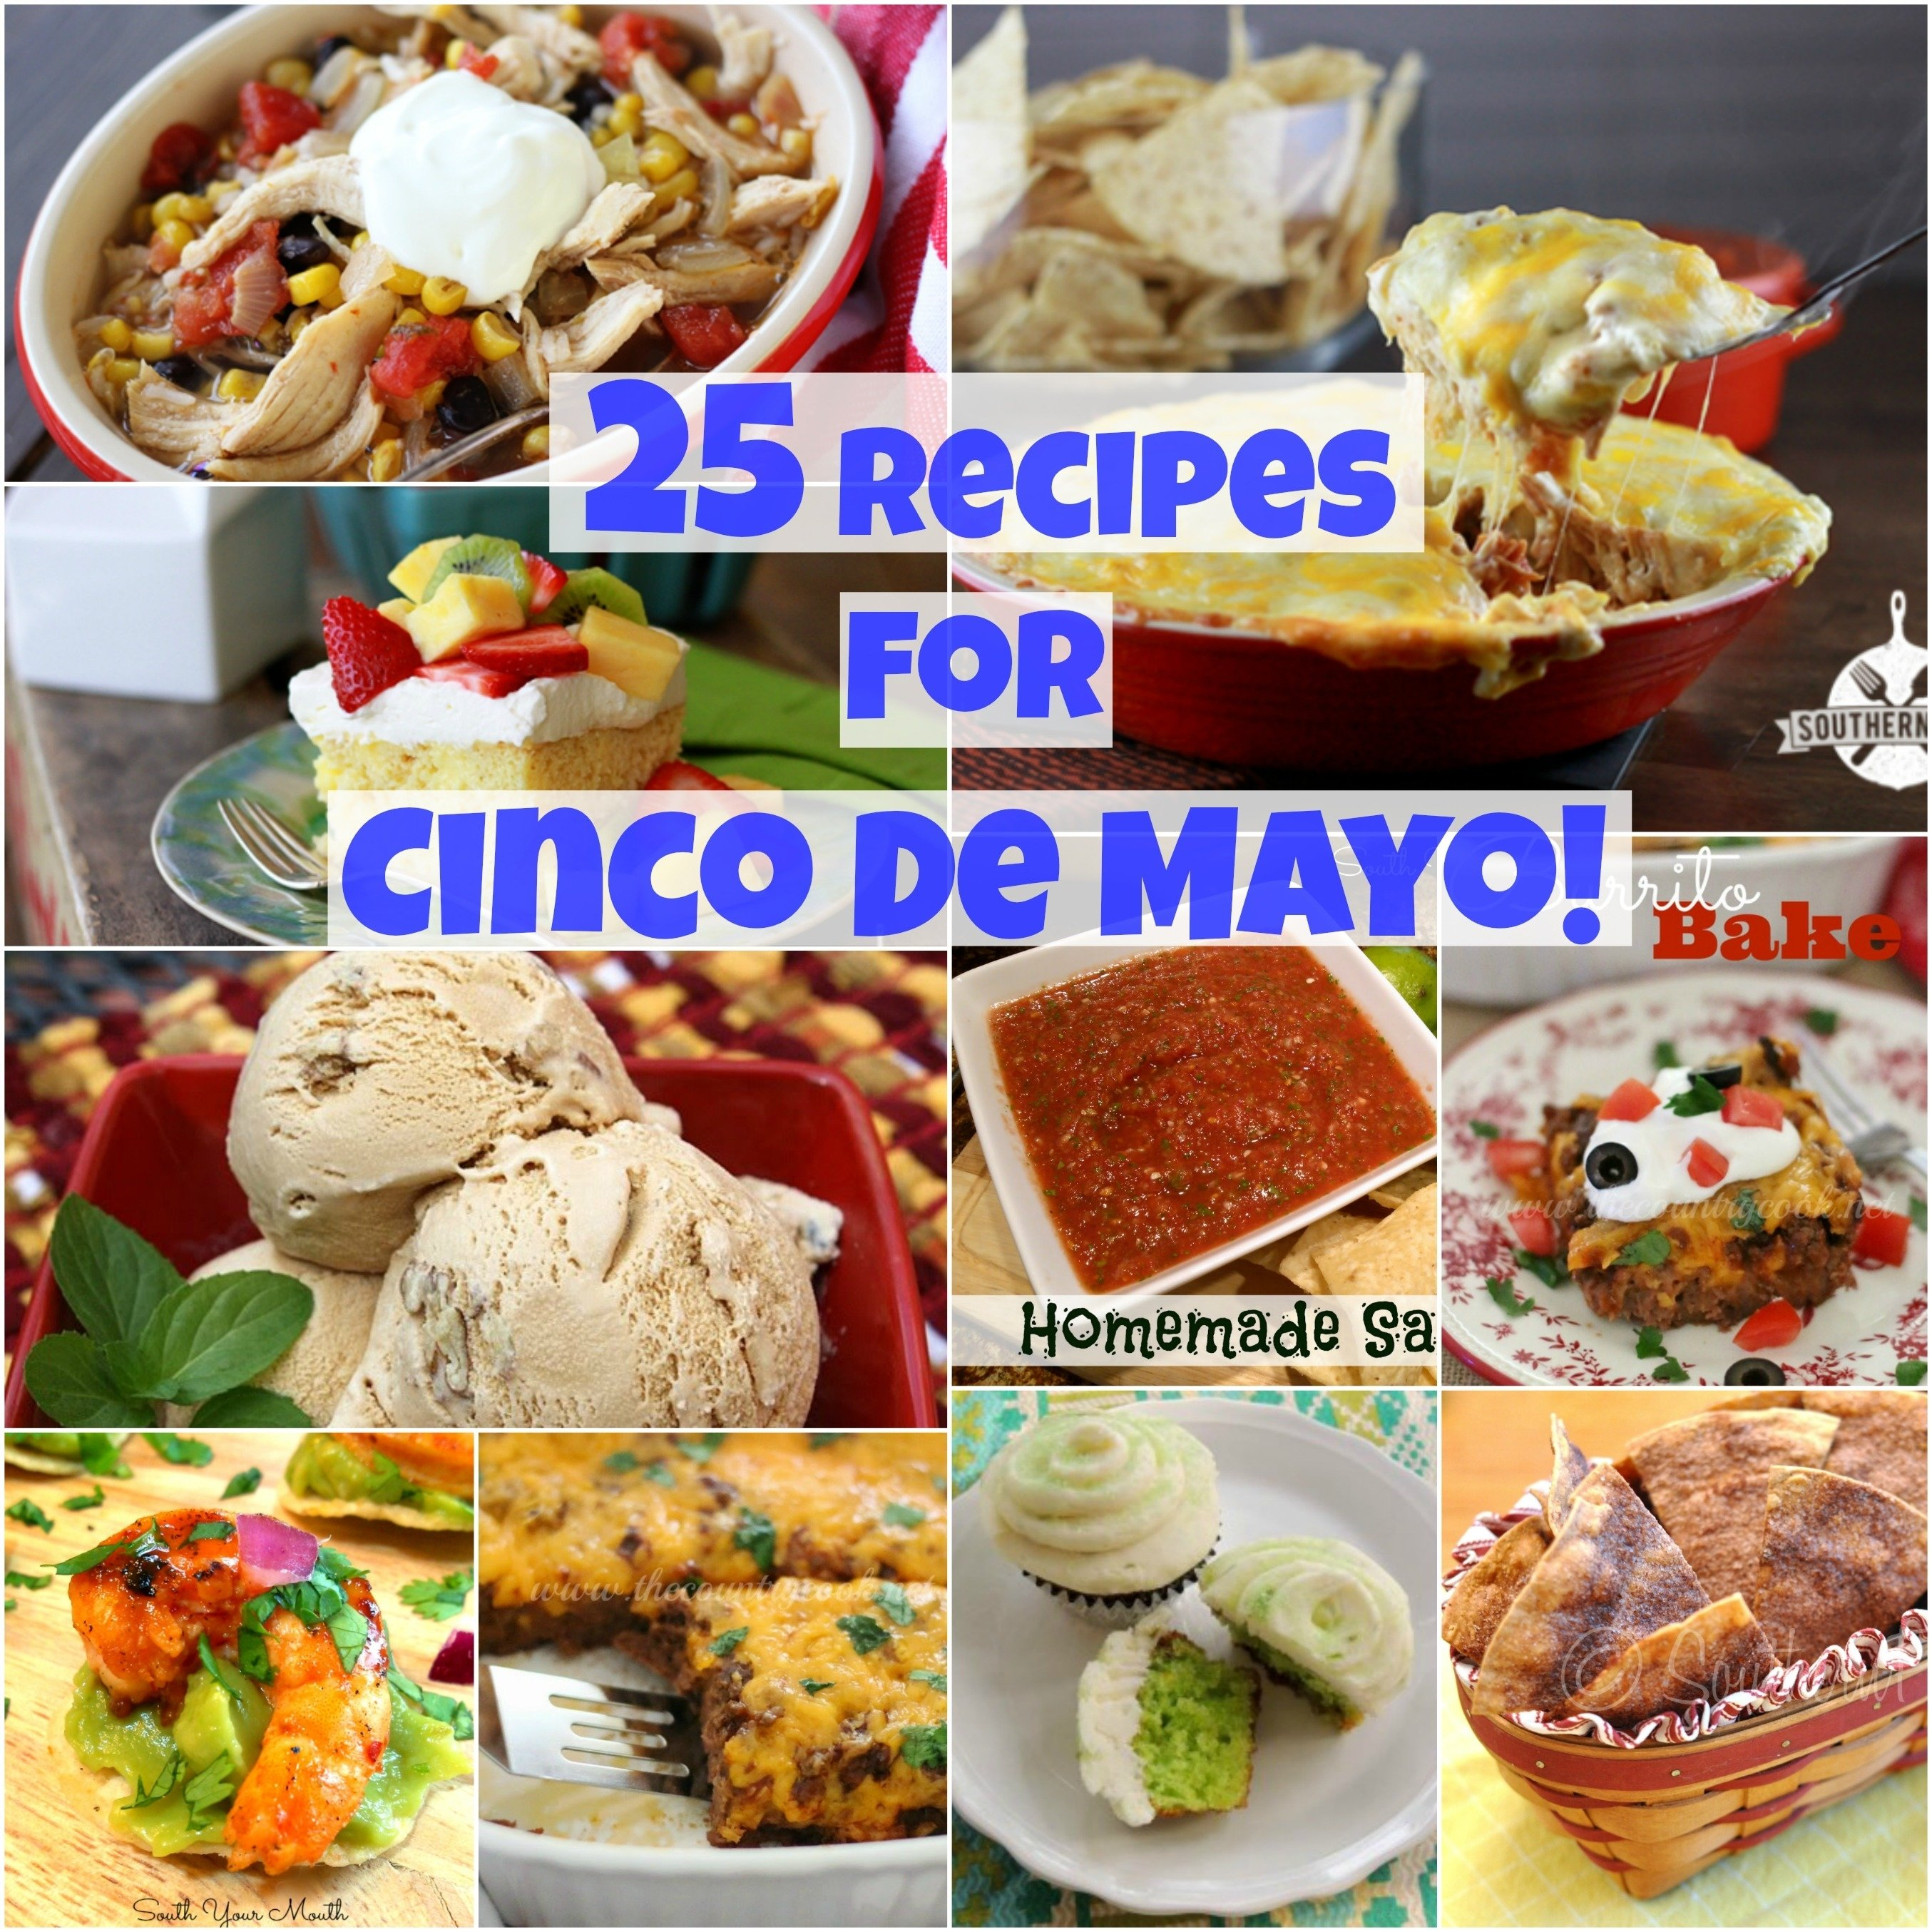 10 Most Recommended Cinco De Mayo Potluck Ideas 25 recipes for cinco de mayo southern plate 2021